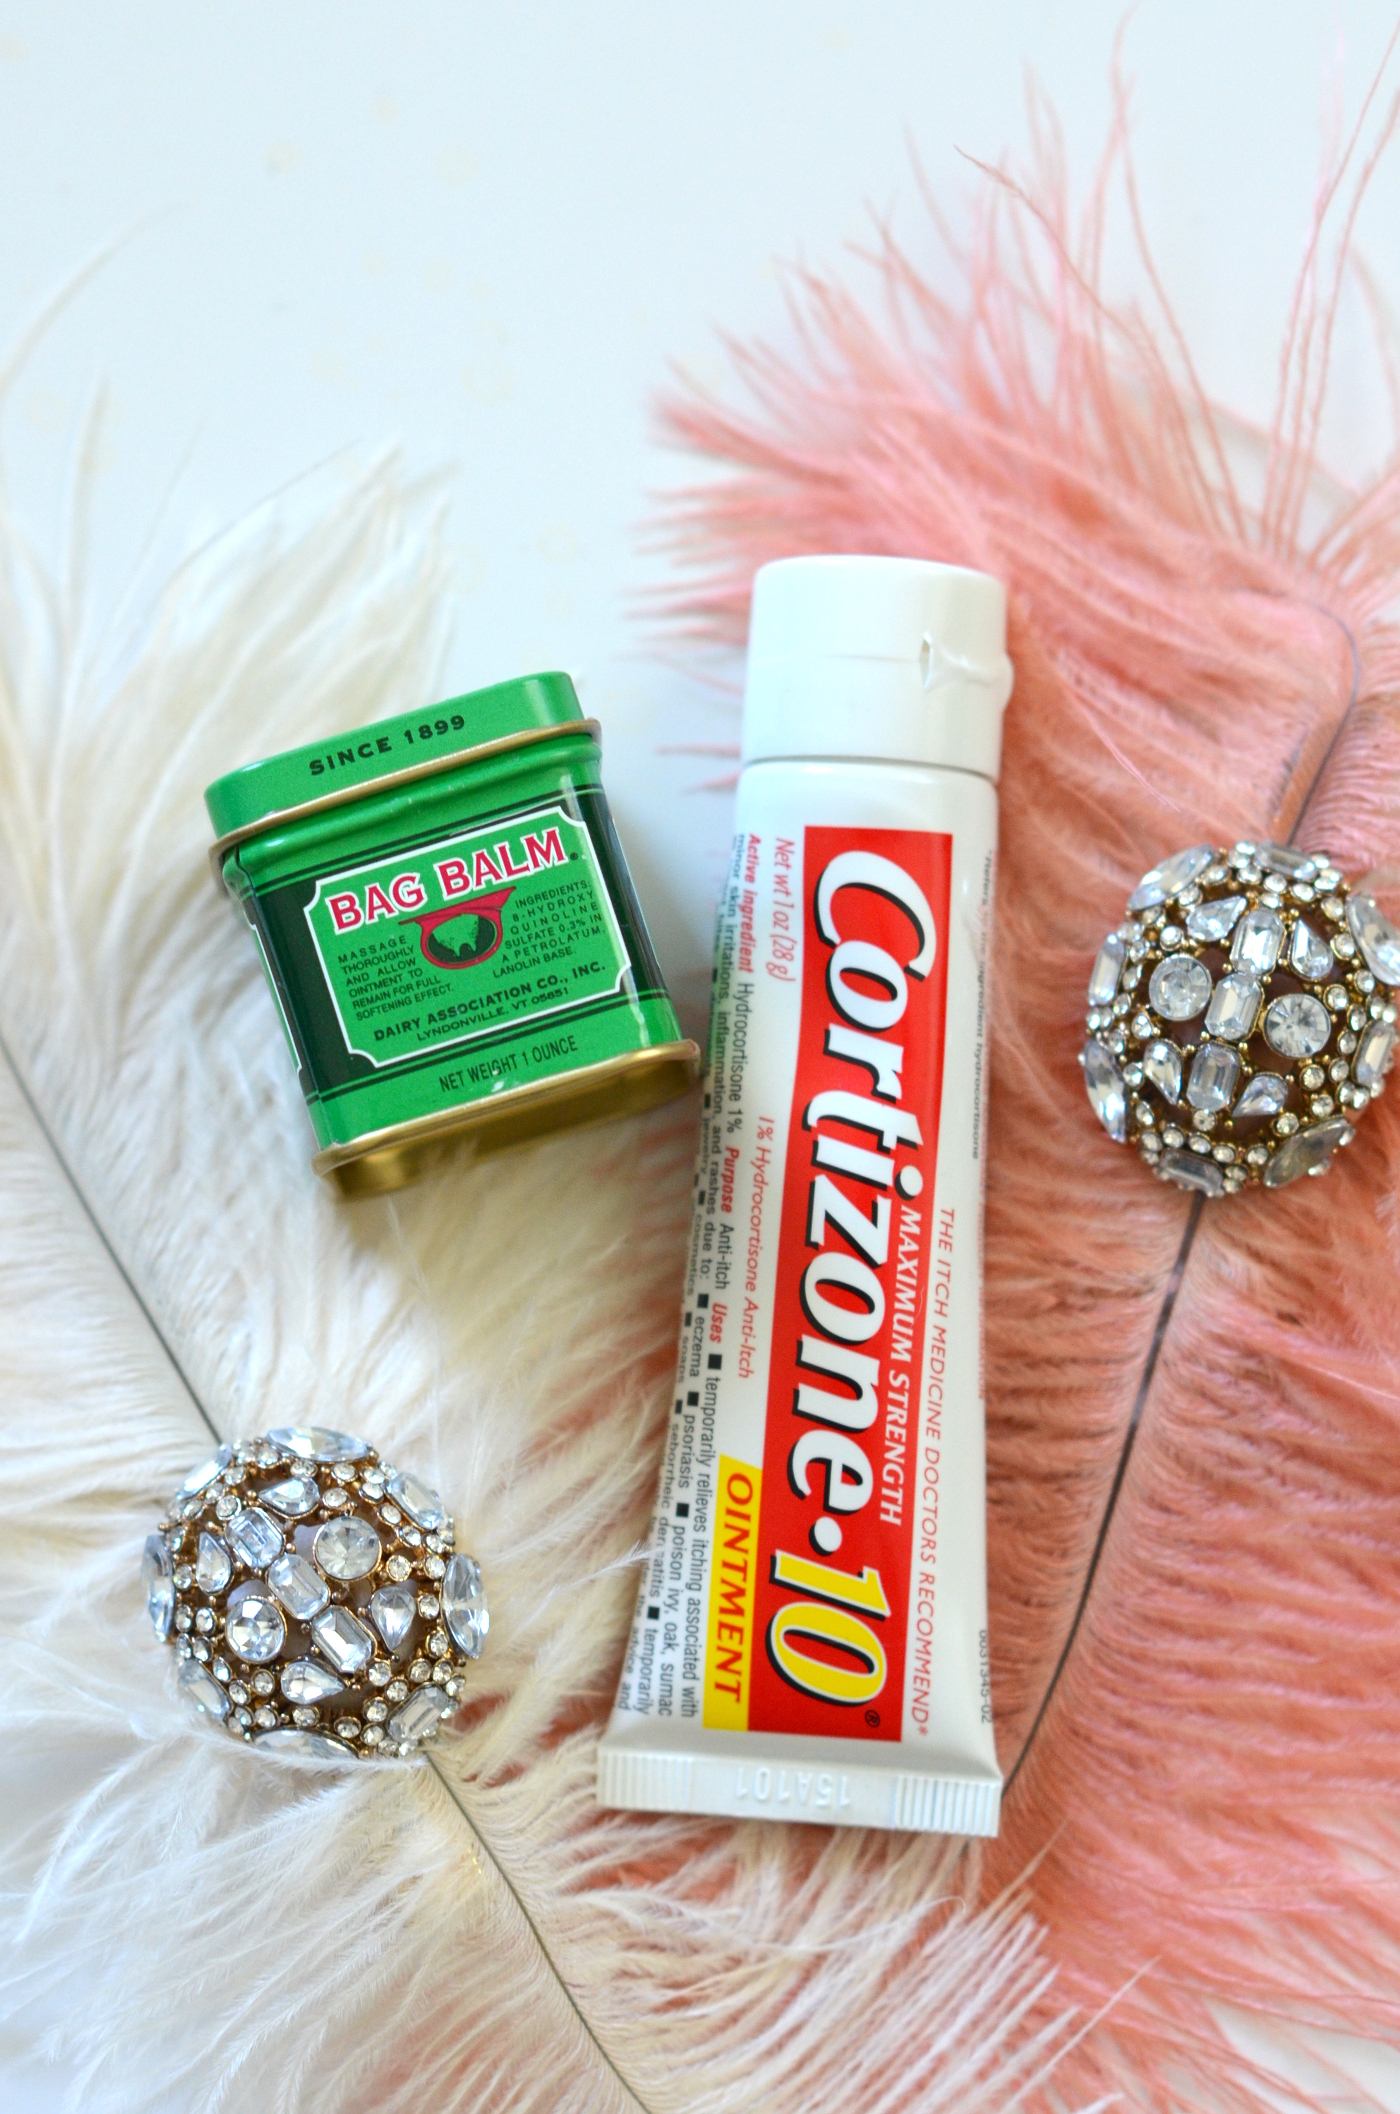 bag balm cortizone ointment to moisturize chapped lips review